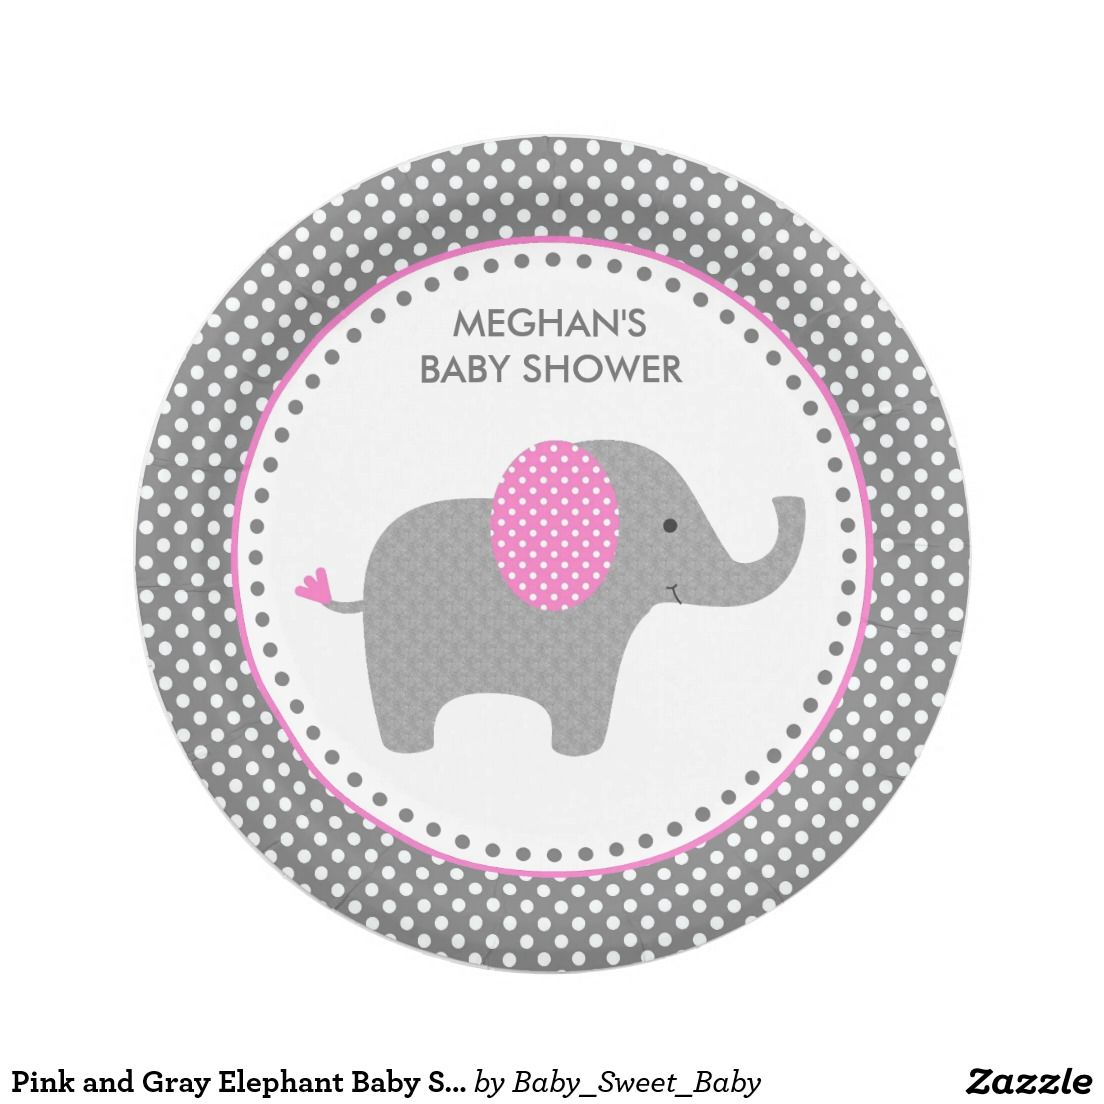 Pink and Gray Elephant Baby Shower Paper Plates  sc 1 st  Pinterest & Pink and Gray Elephant Baby Shower Paper Plates | Grey elephant ...